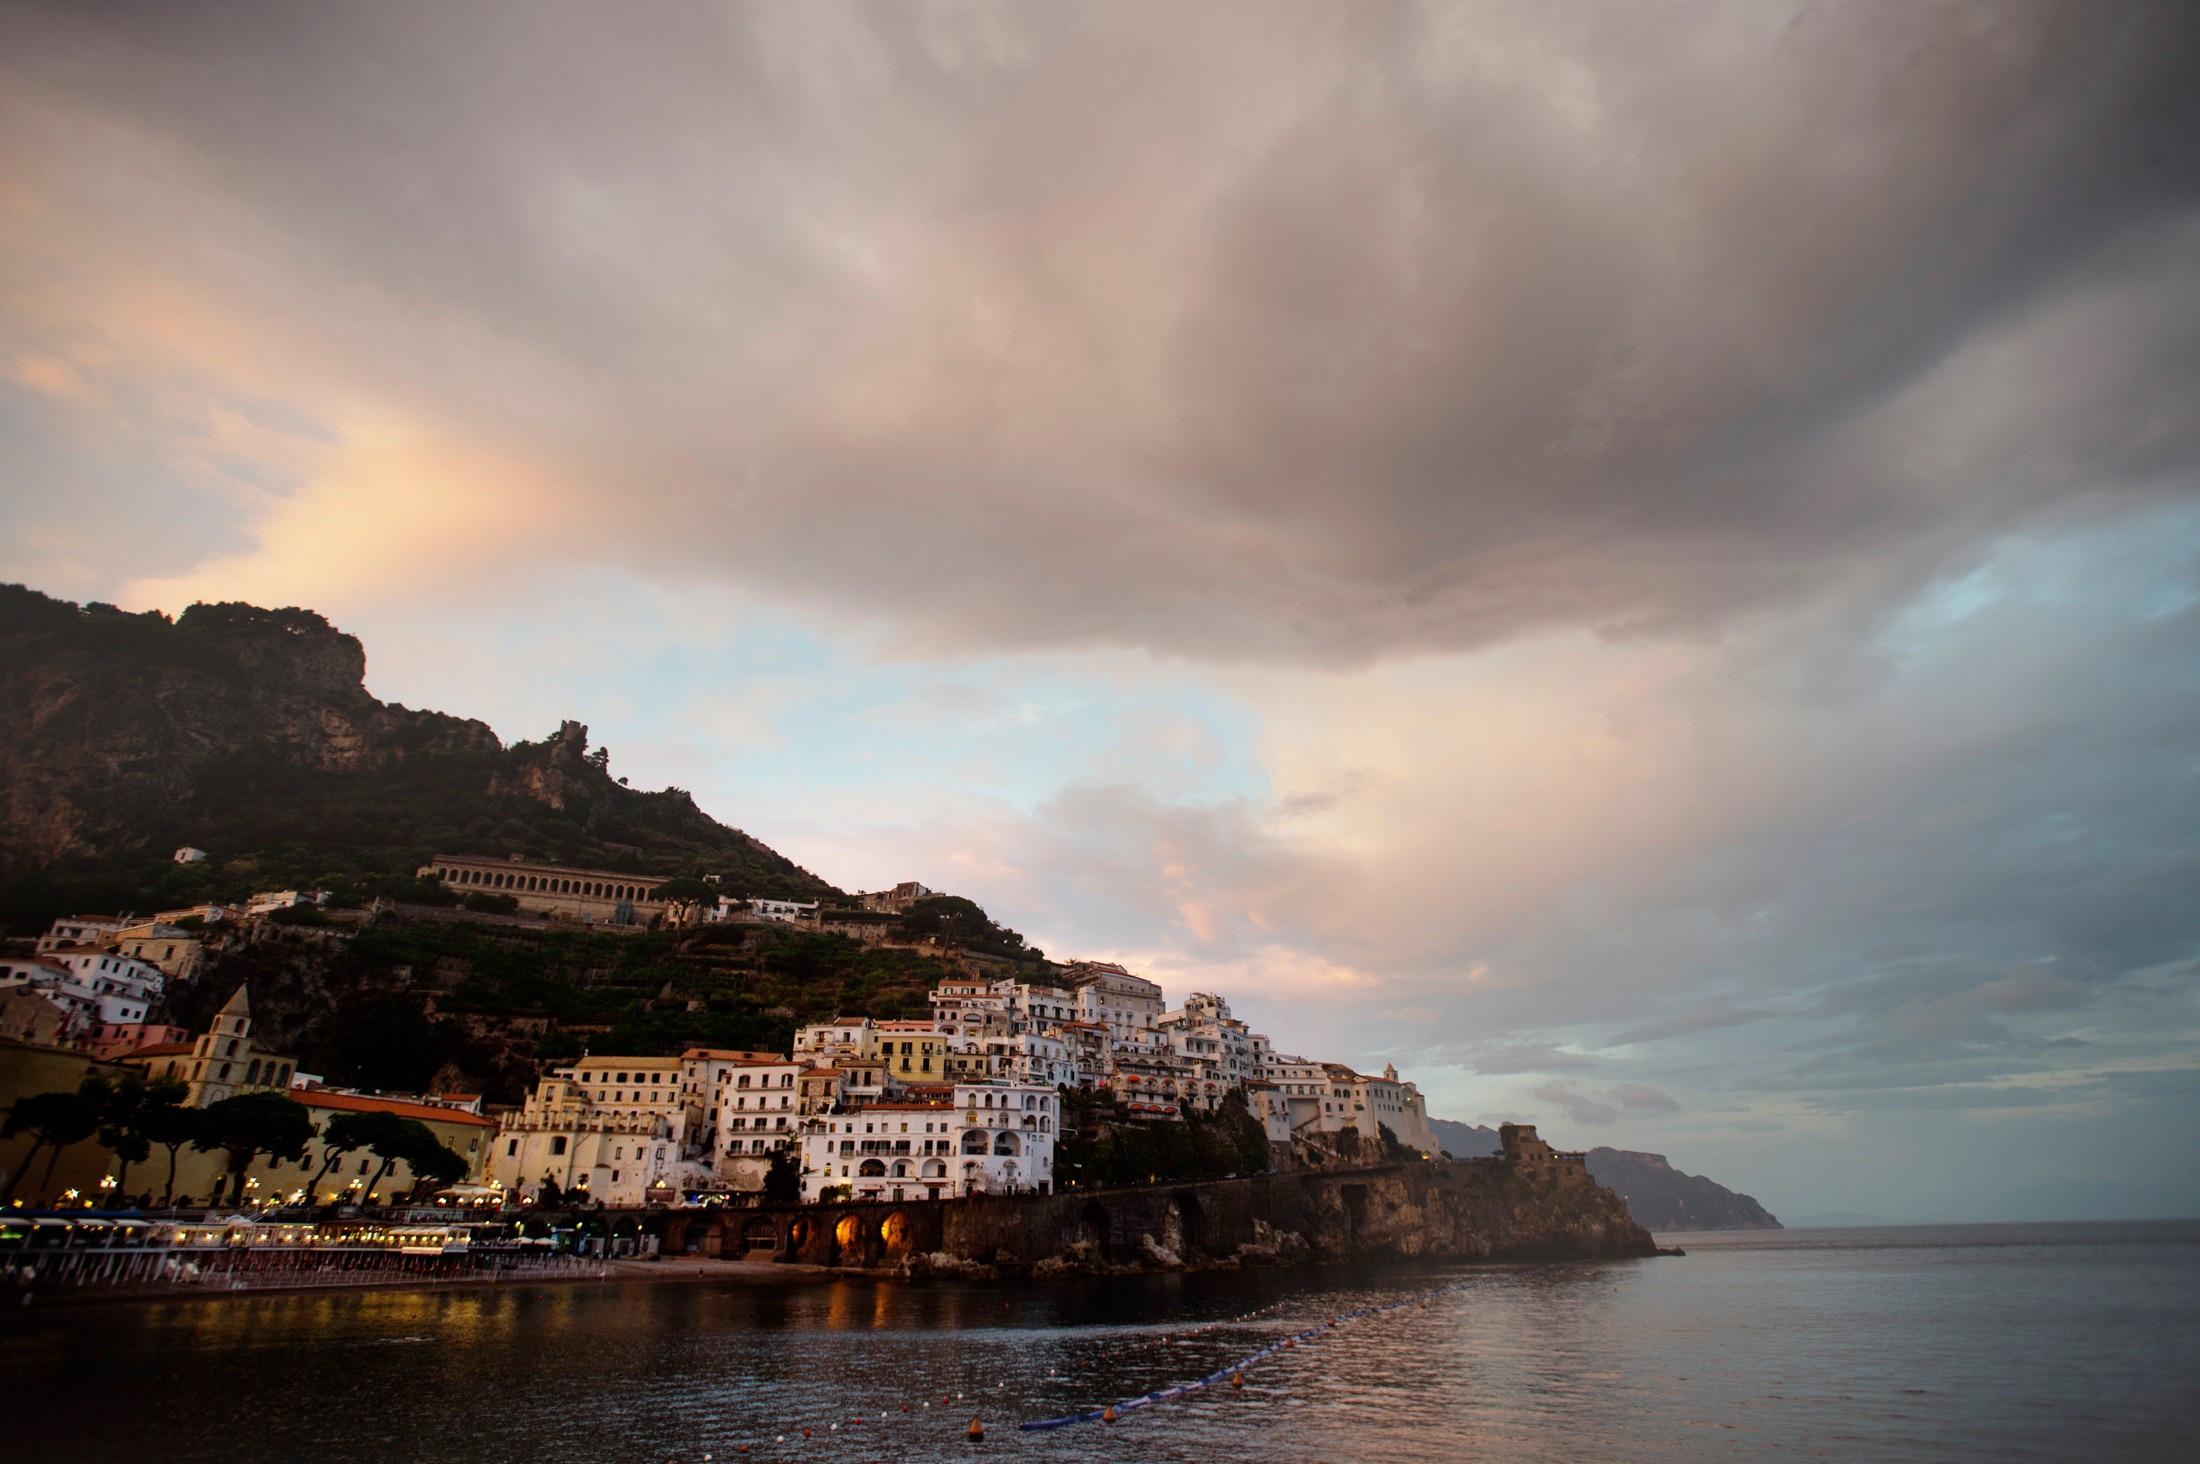 landscape from the amalfi coast after the rain